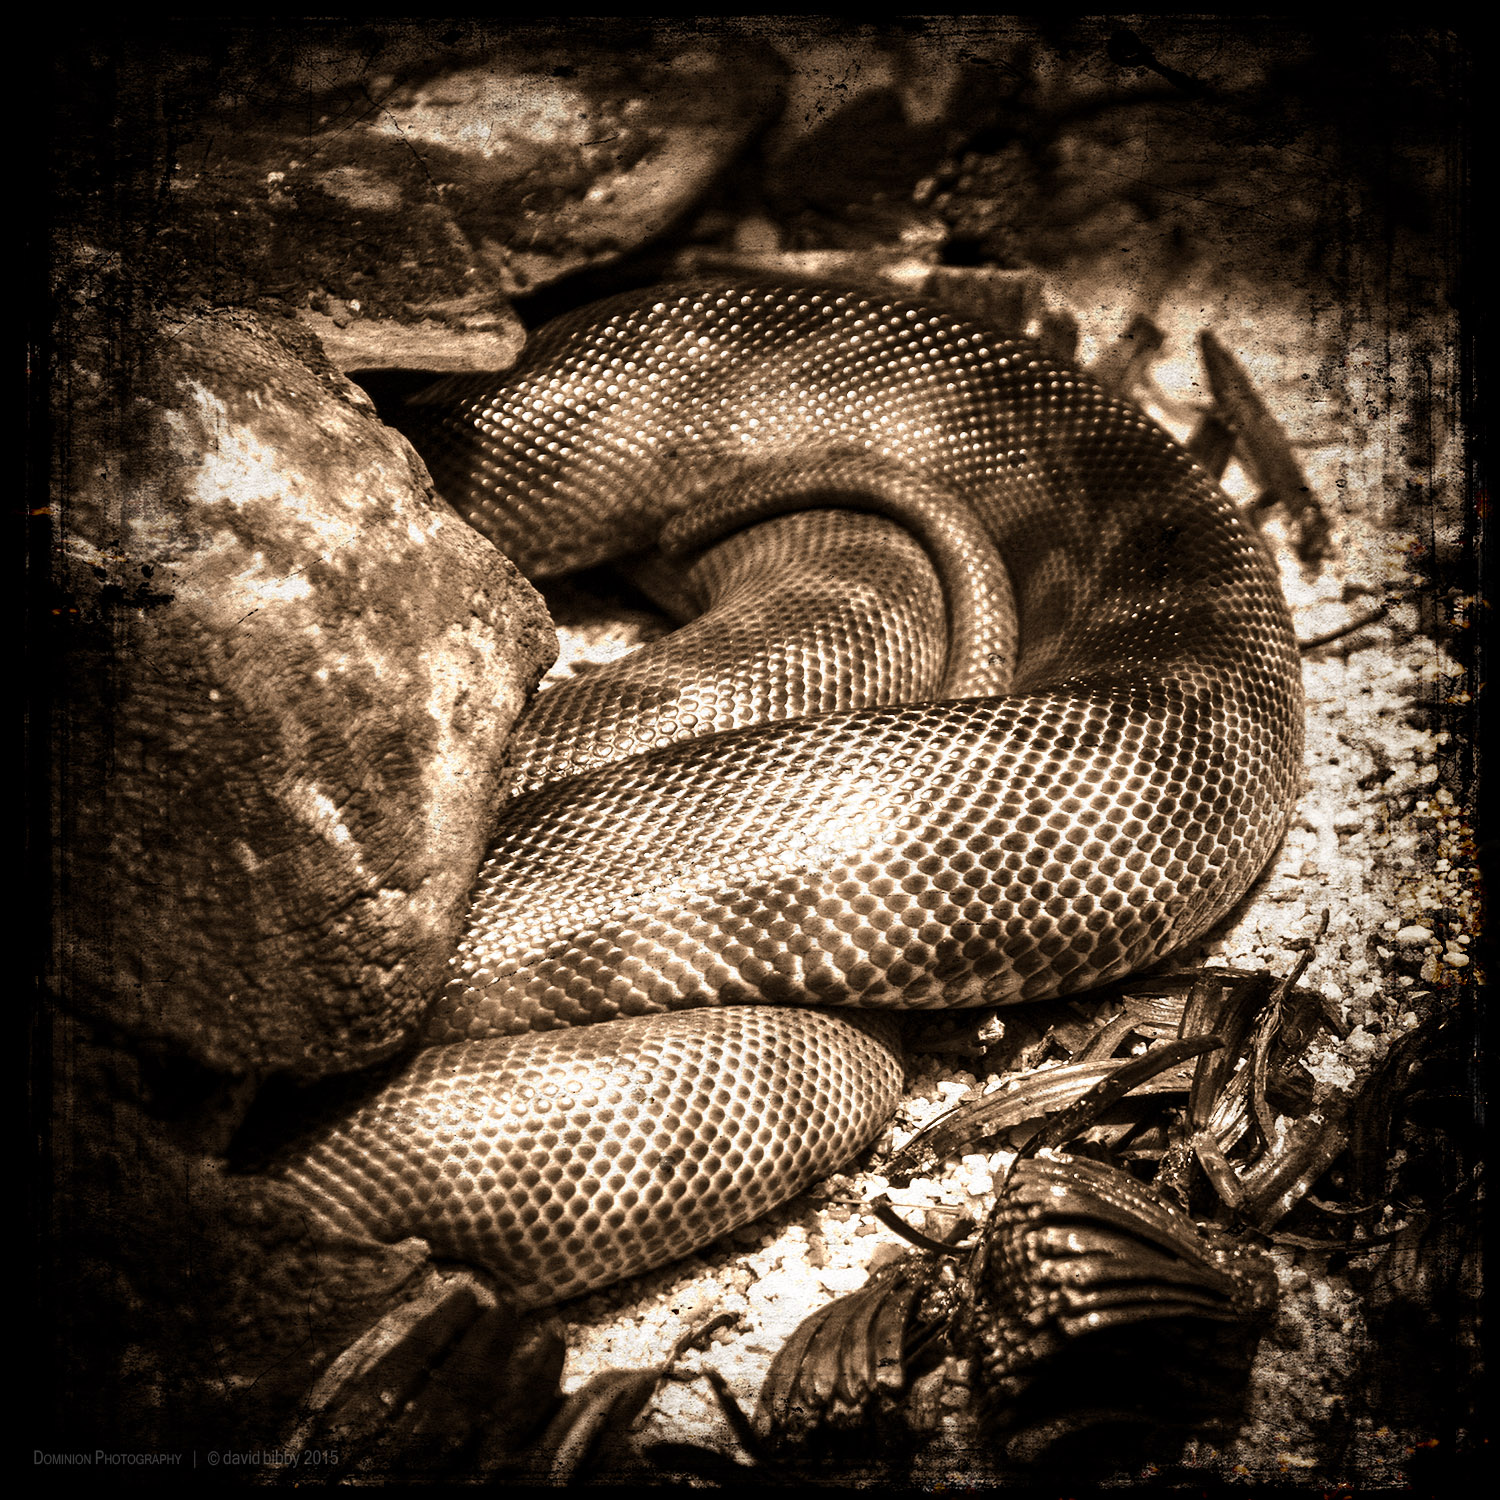 Relying upon effort   Therefore, just as I would jump up If a snake were to crawl into my lap, So, whenever sleep or laziness threaten, I will swiftly remove them from my mind.